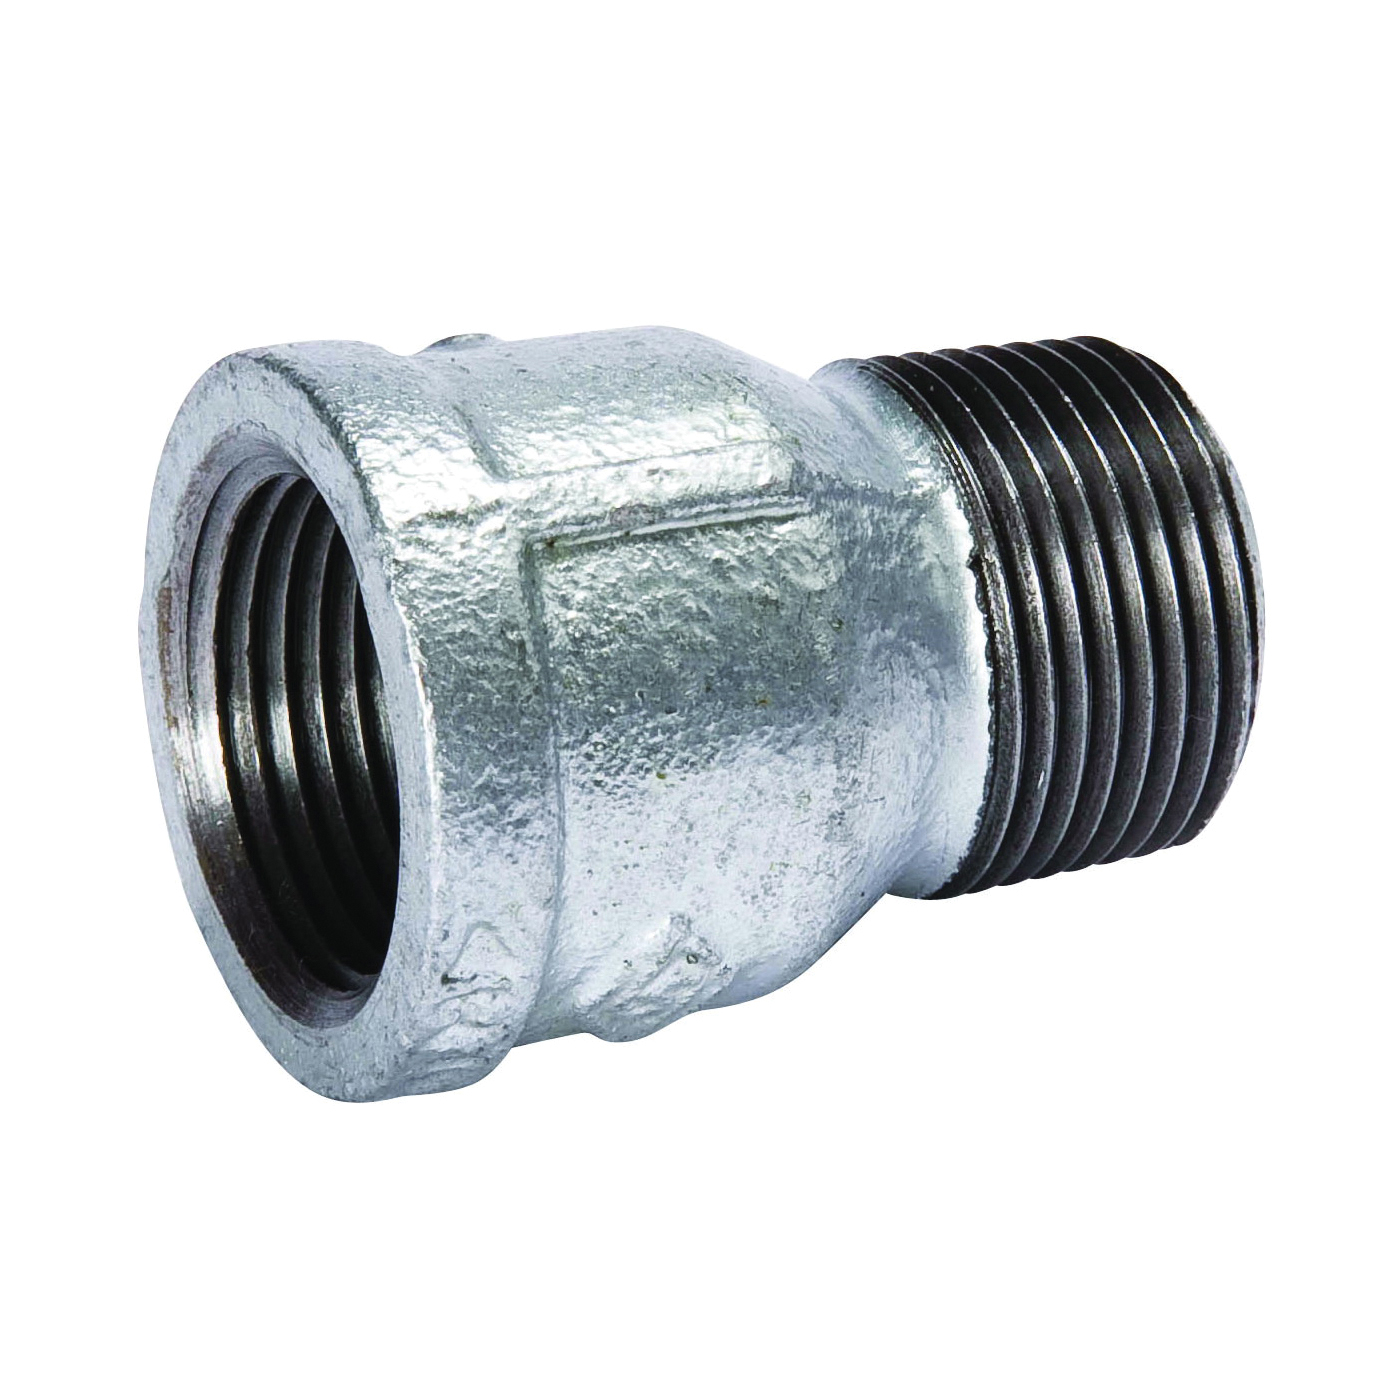 Picture of B & K 511-613 Pipe Extension Piece, 1/2 in, 1/2 in